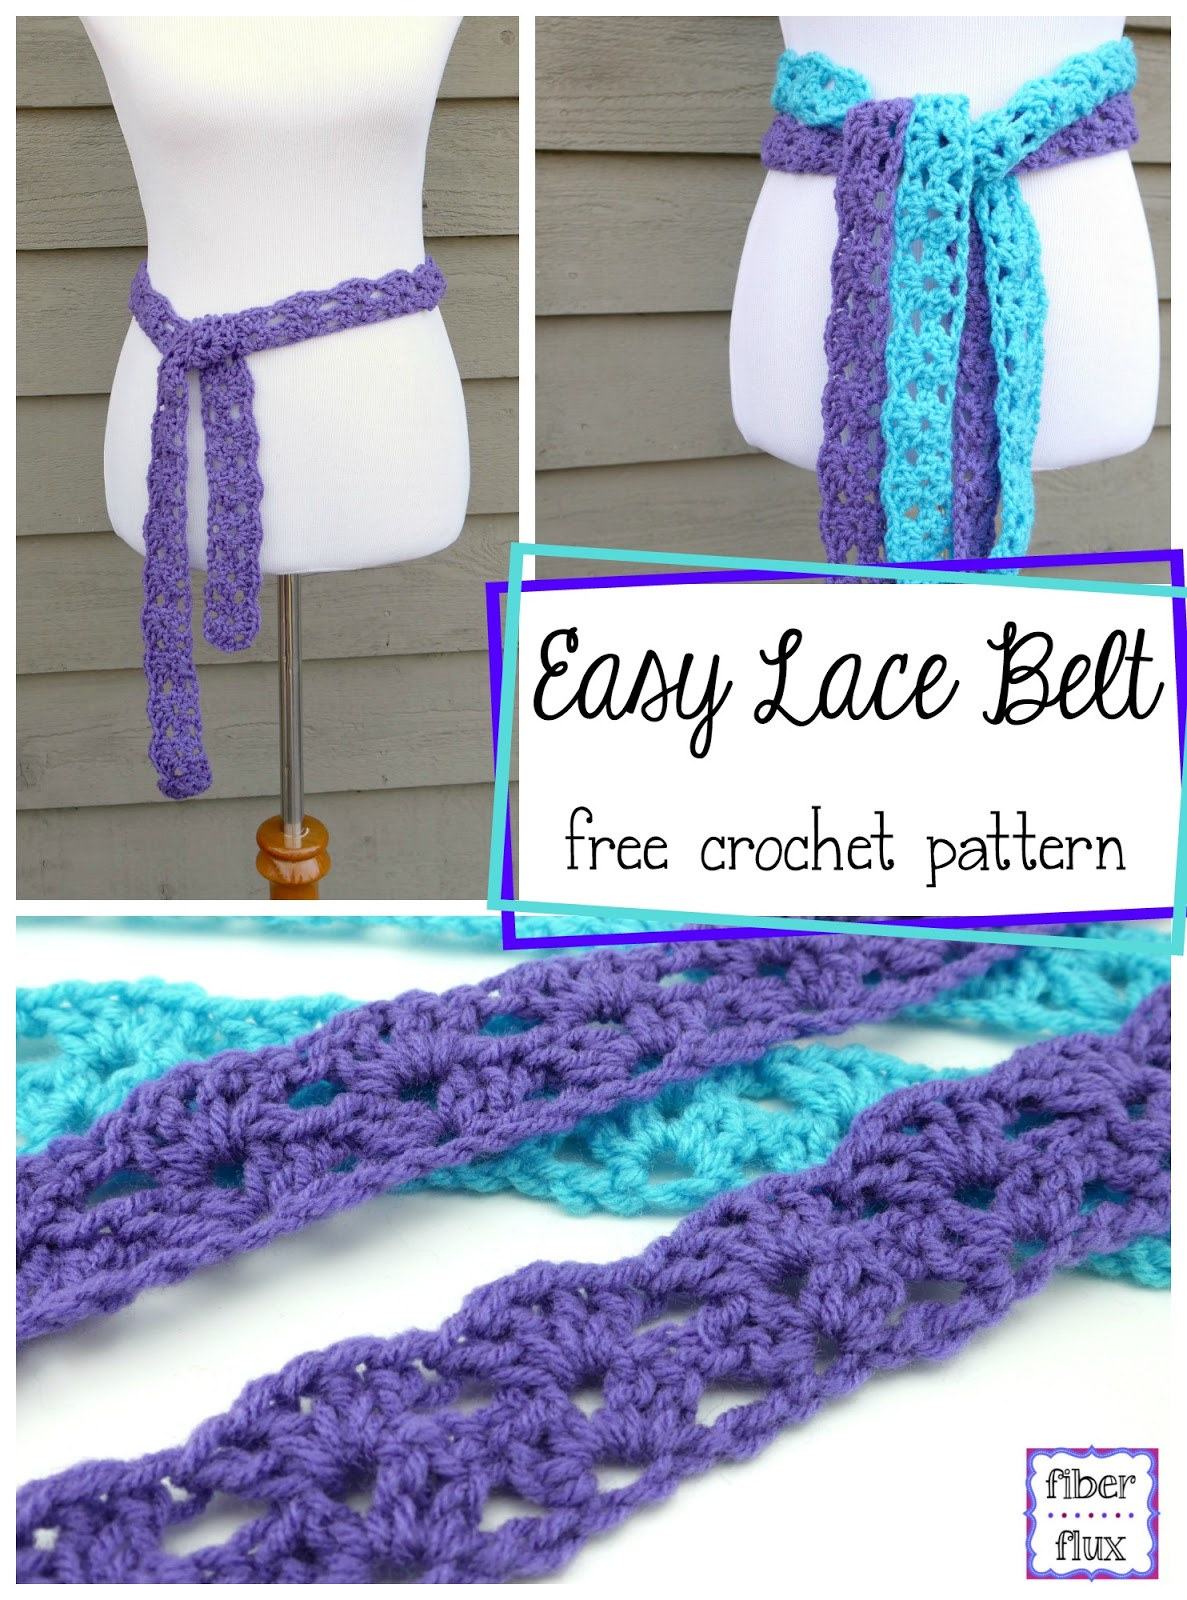 Fiber Flux: Free Crochet Pattern...Easy Lace Belt!